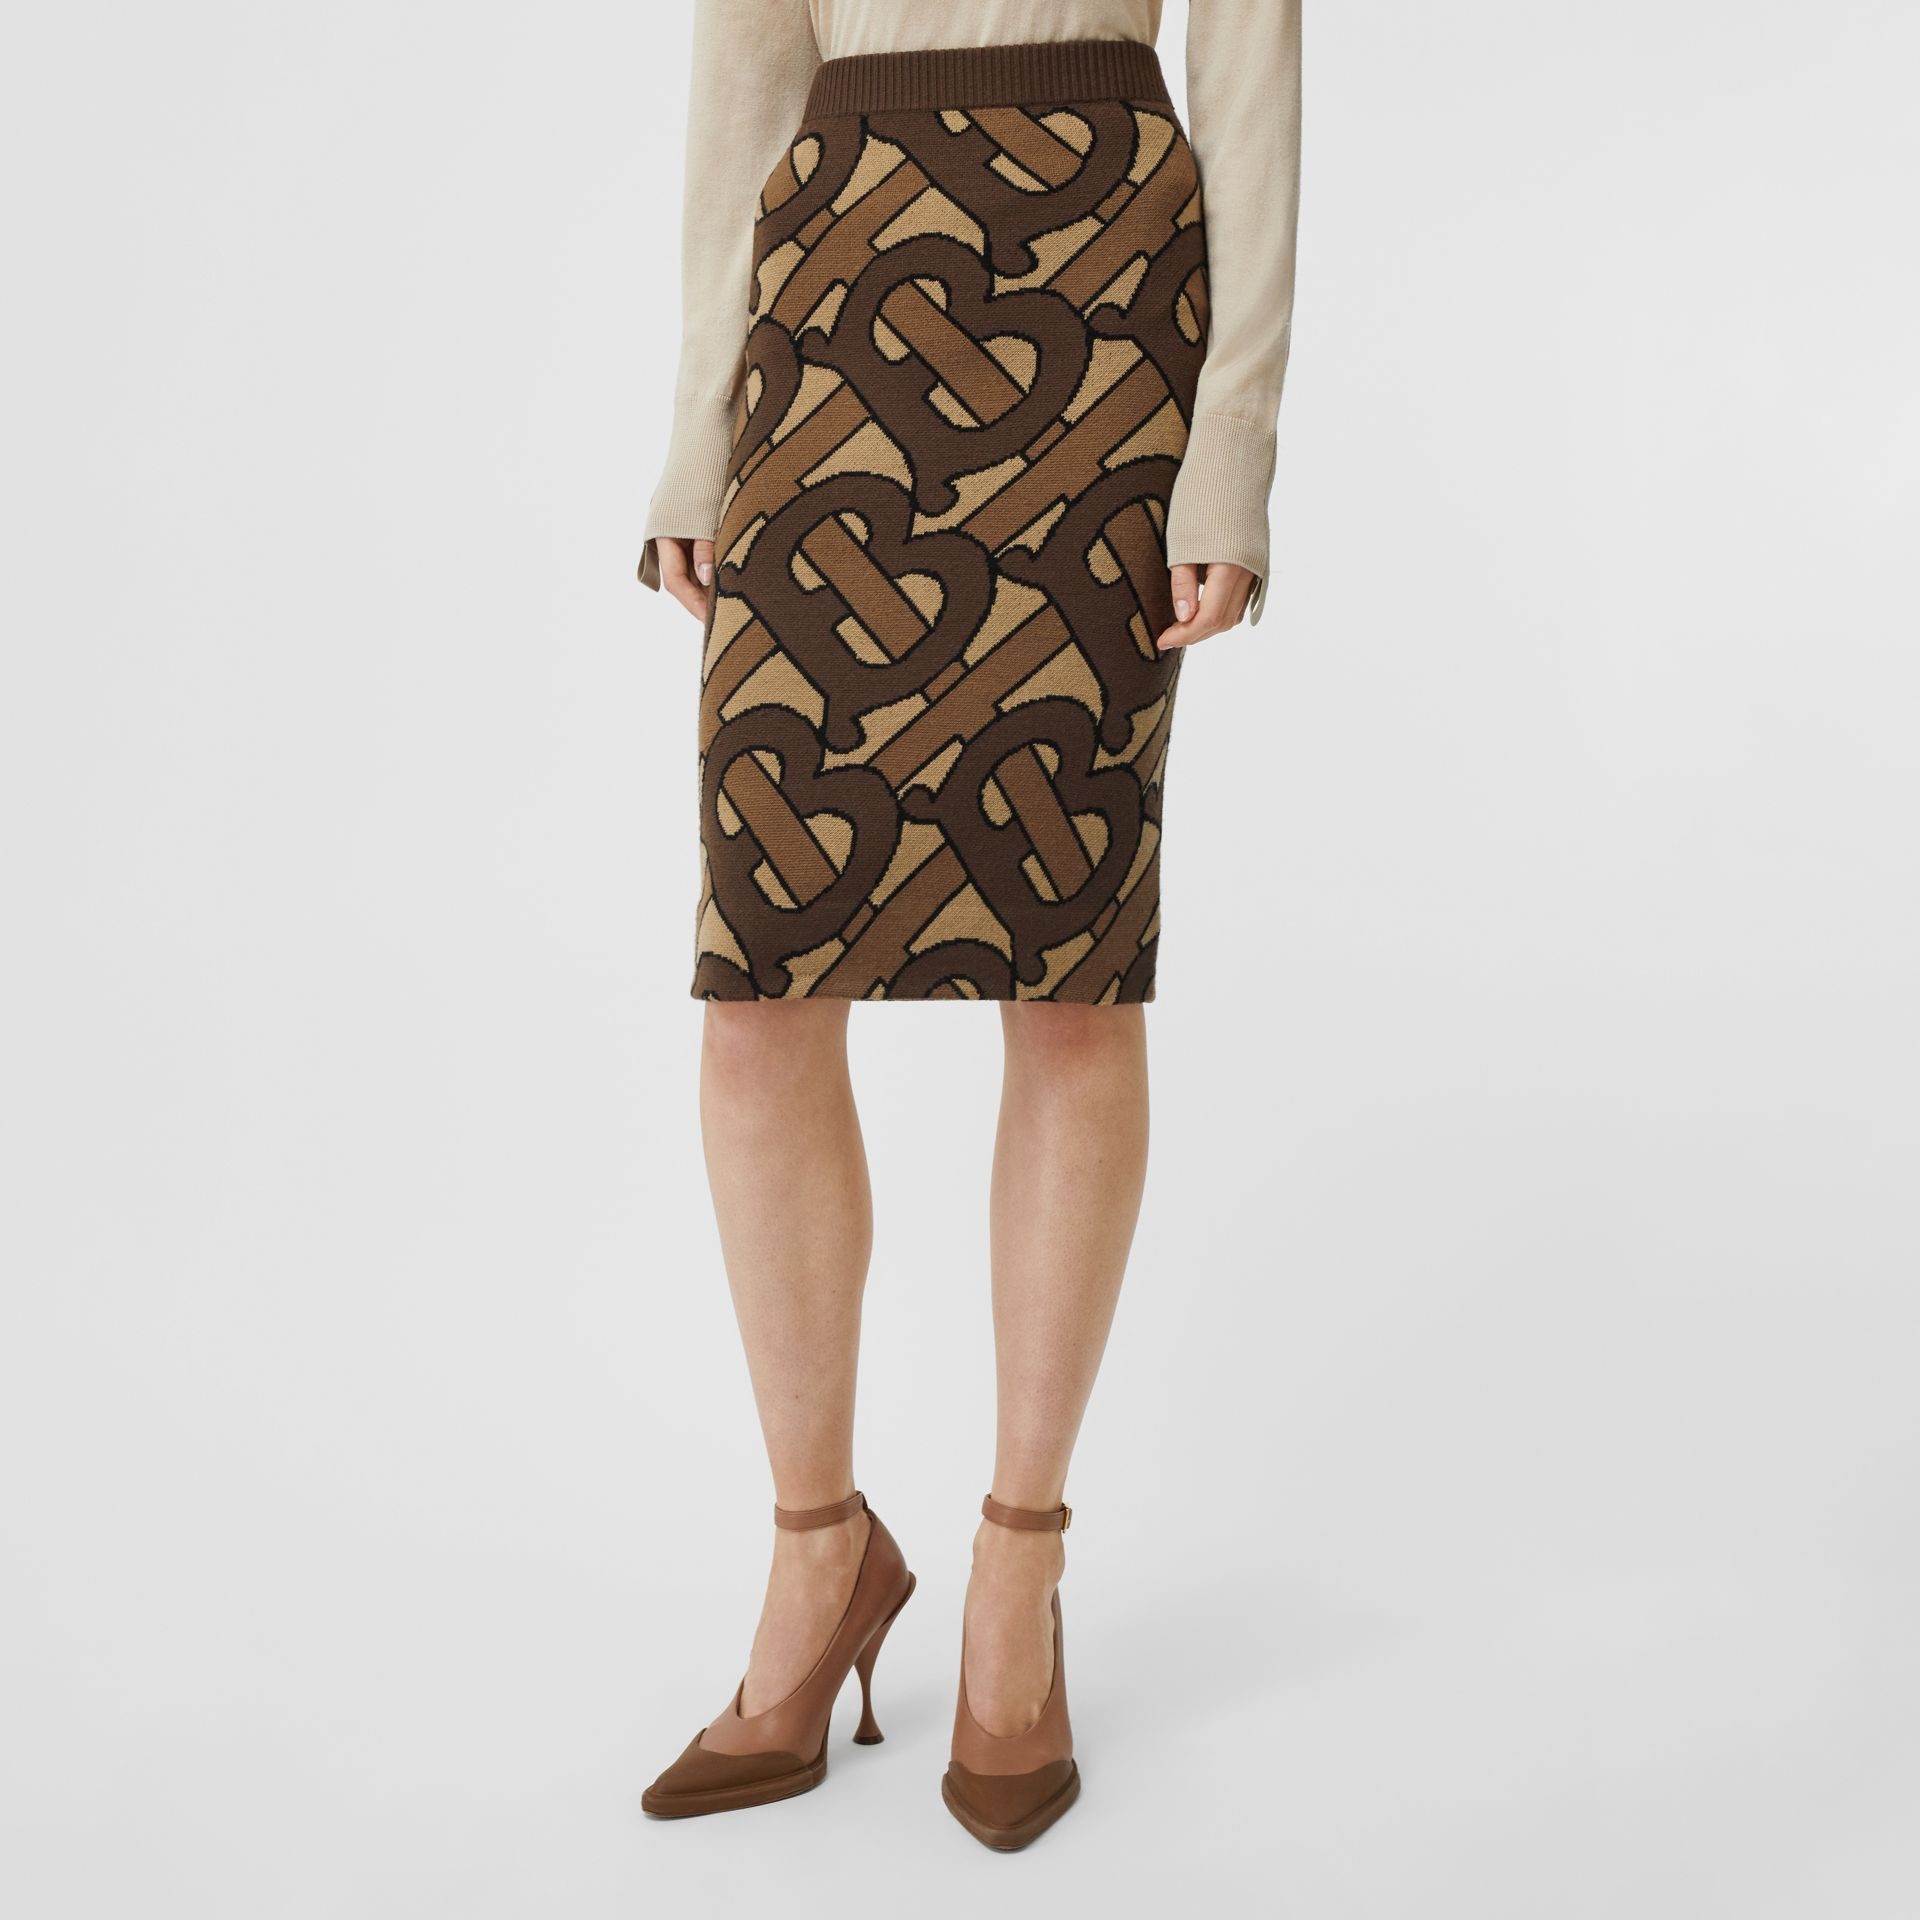 Monogram Intarsia Wool Pencil Skirt in Bridle Brown - Women | Burberry Australia - gallery image 5